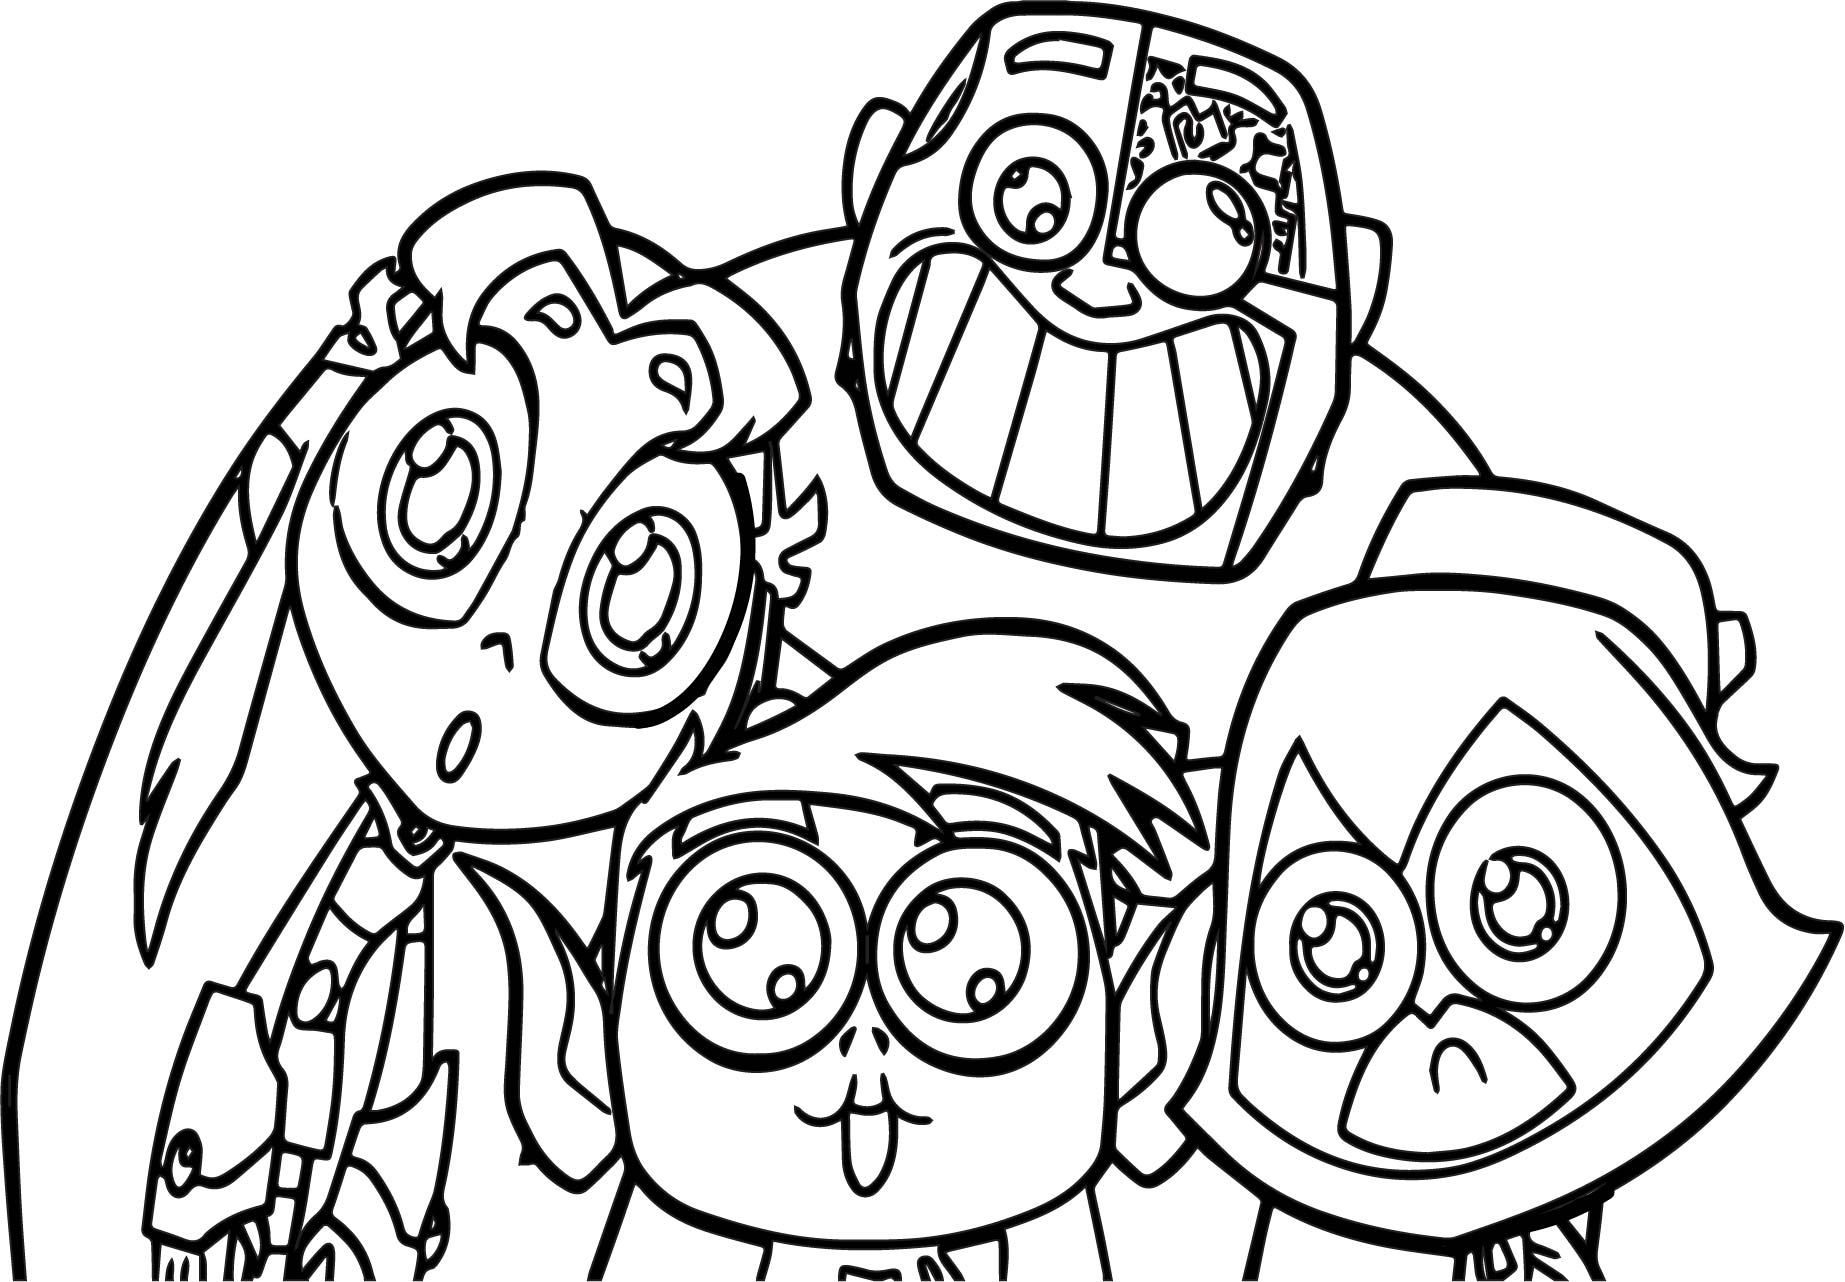 Teen Titans Coloring Pages Best Coloring Pages For Kids